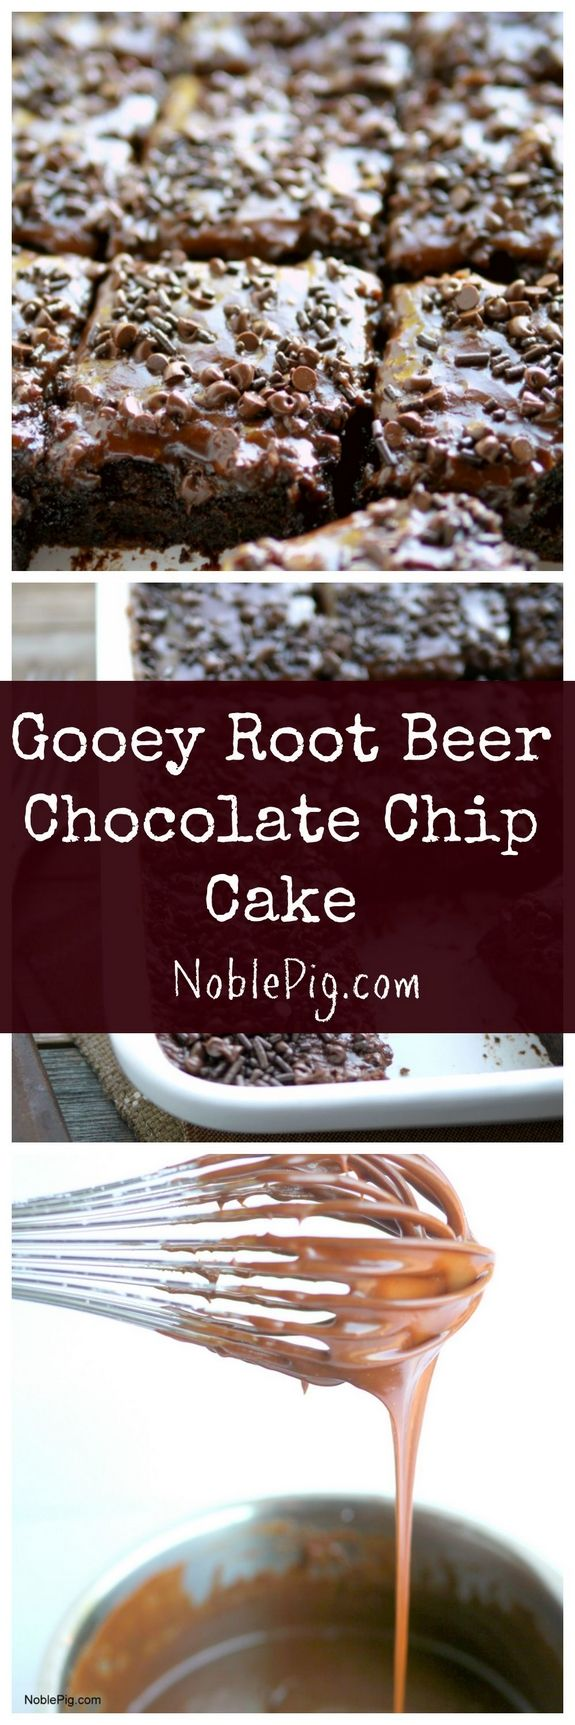 VIDEO + Recipe for Gooey Root Beer Chocolate Chip Cake from NoblePig.com